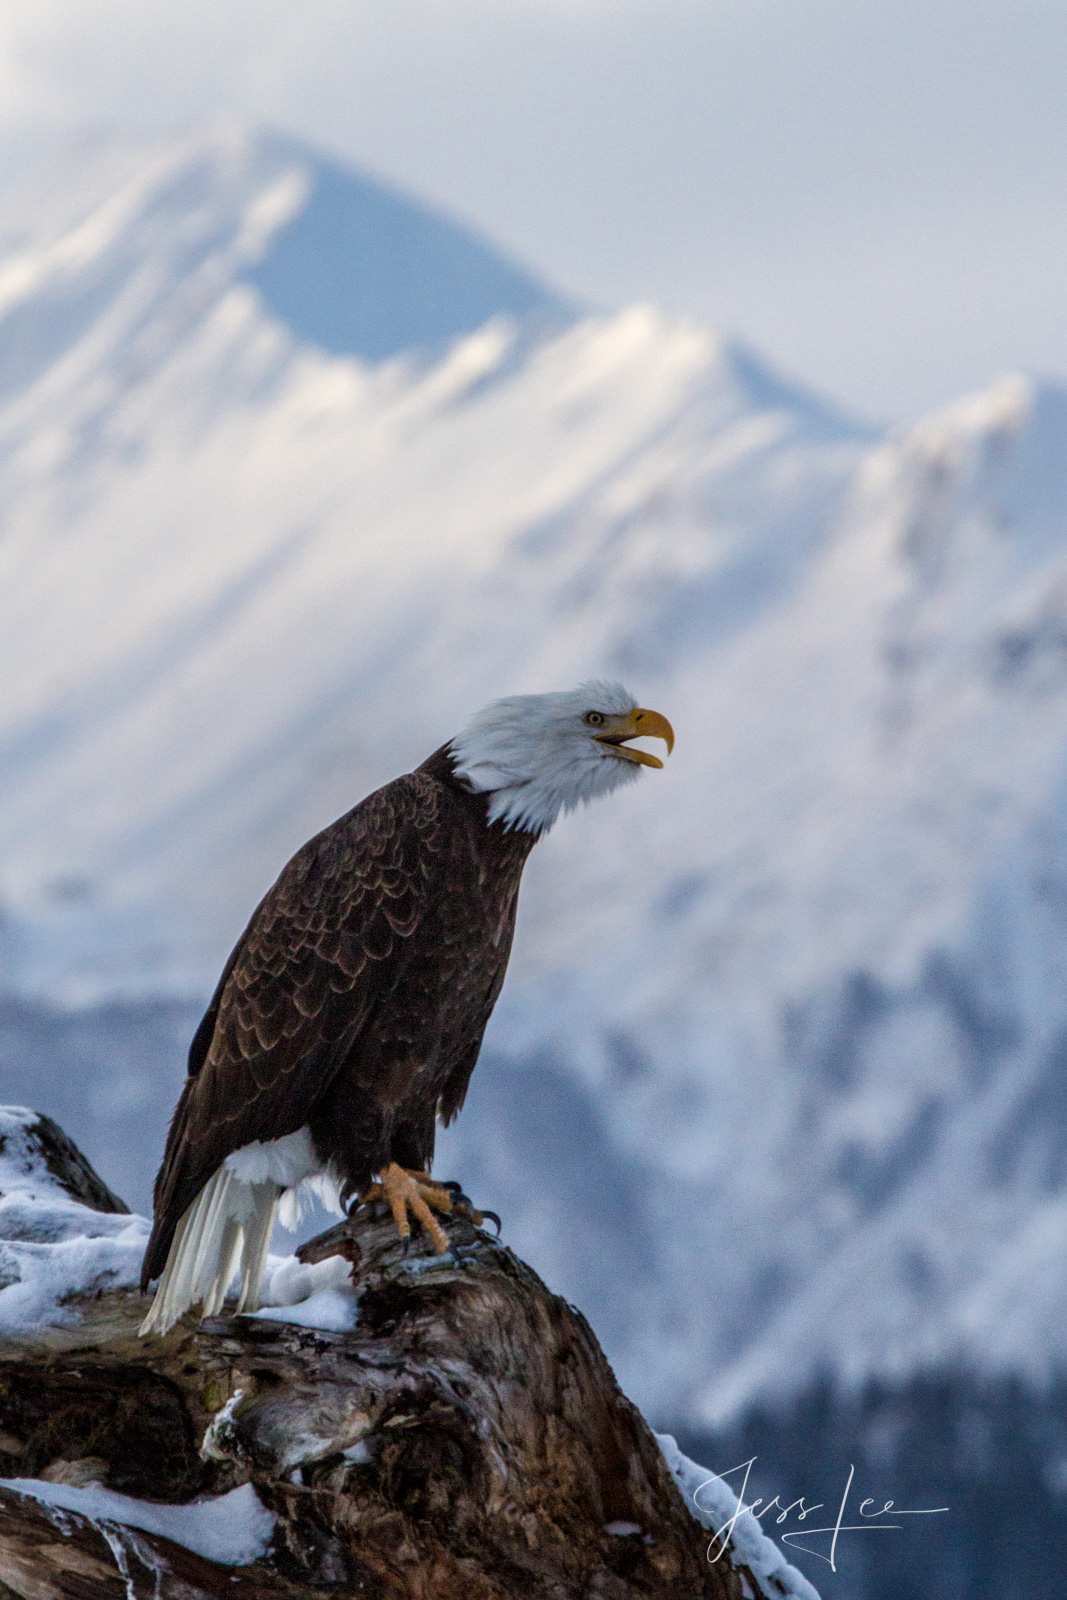 Bring home the power and beauty of the amazing fine art American Bald Eagle photograph Chatter Box by Jess Lee from his Wildlife...